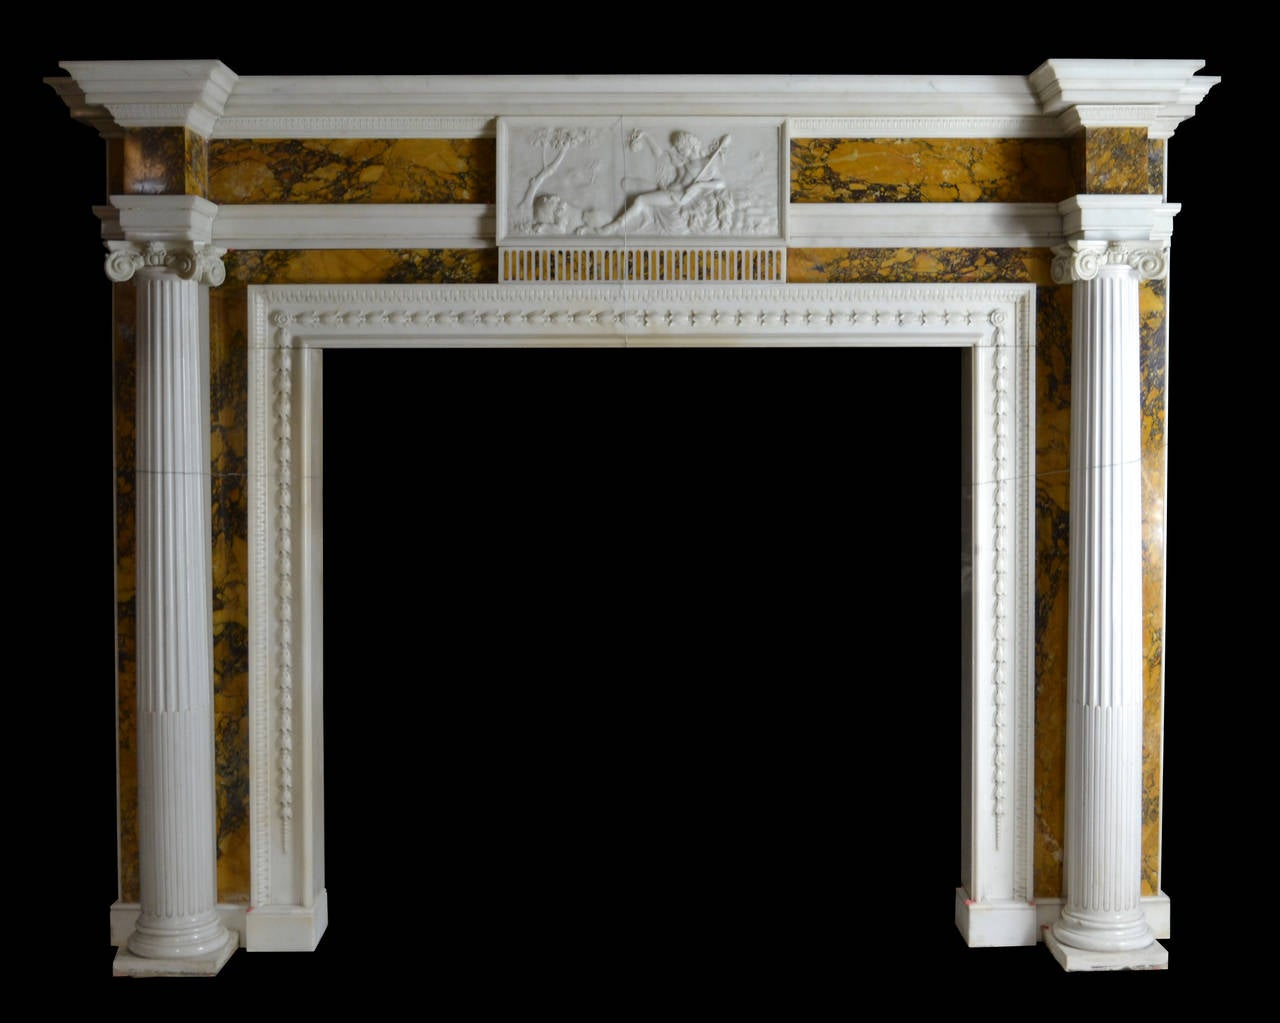 An imposing late 18th century Irish chimneypiece in Italian statuary with richly colored and strongly veined Convent Siena marble inlay, circa 1790.